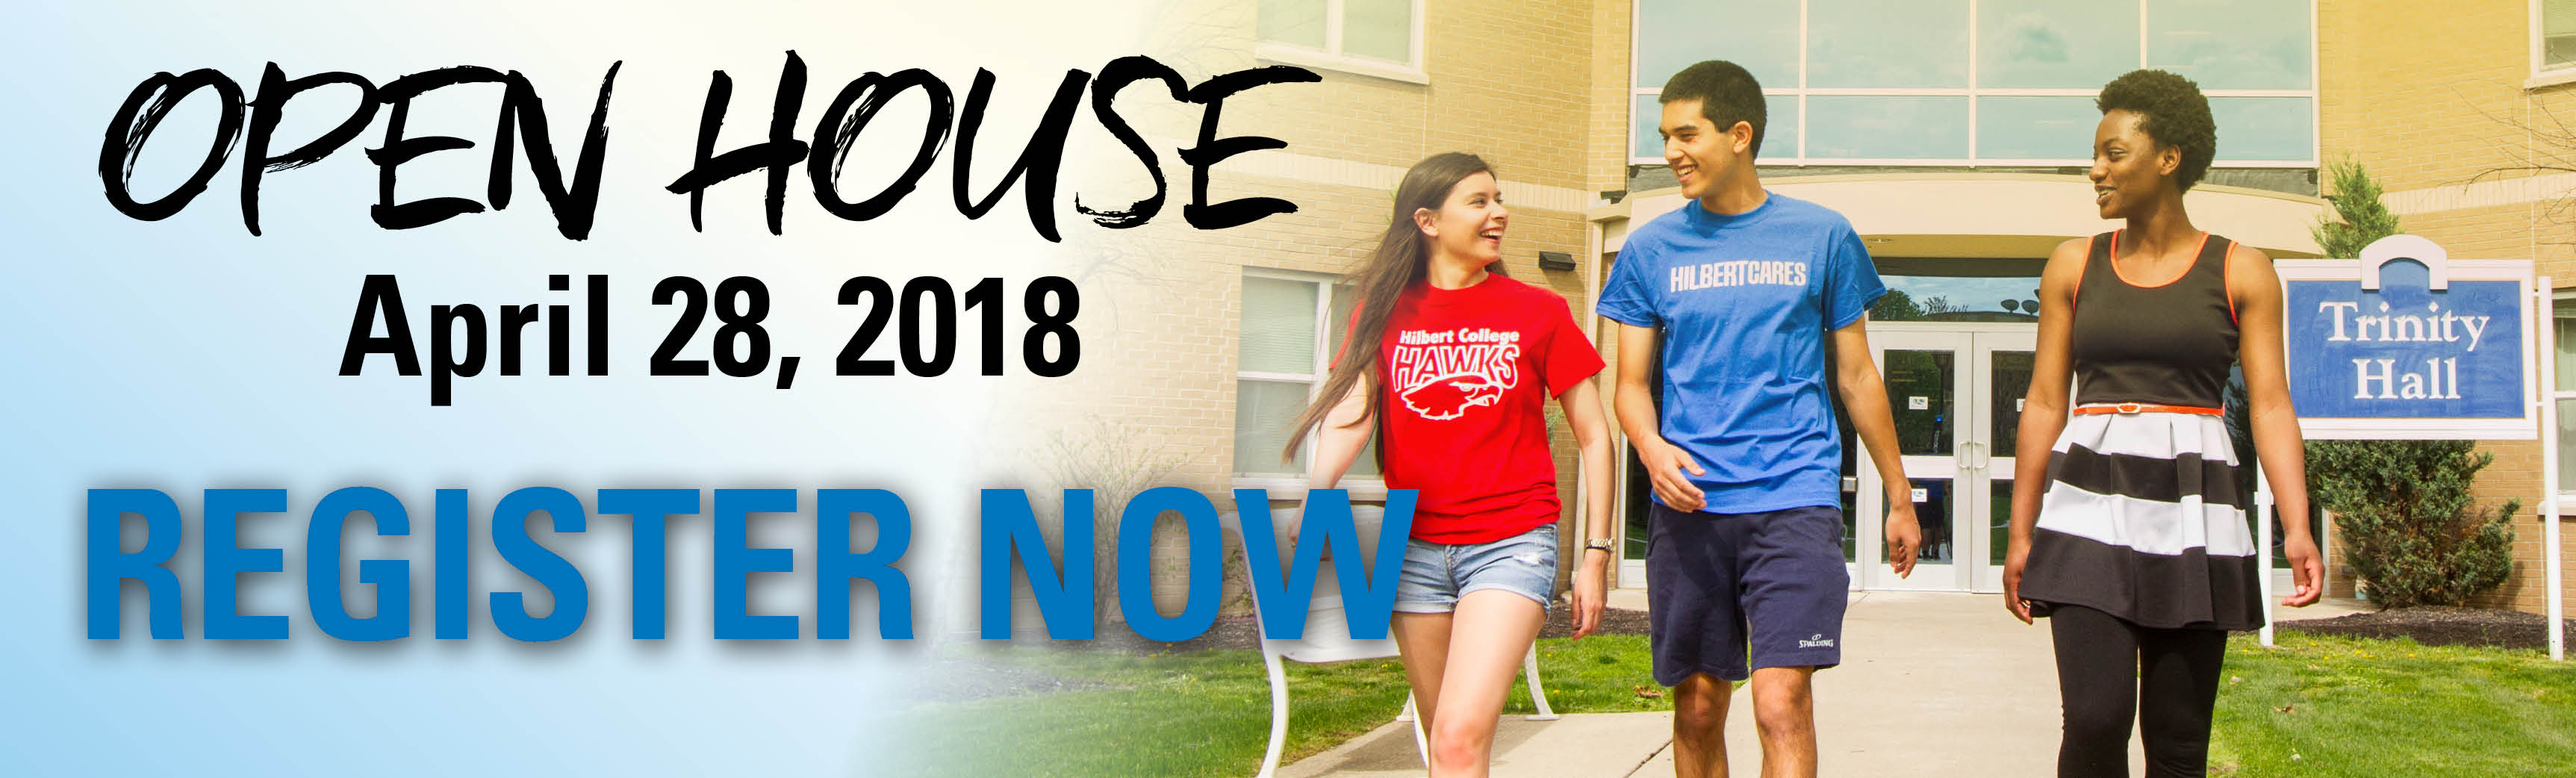 Spring 2018 Open House april 28 register now